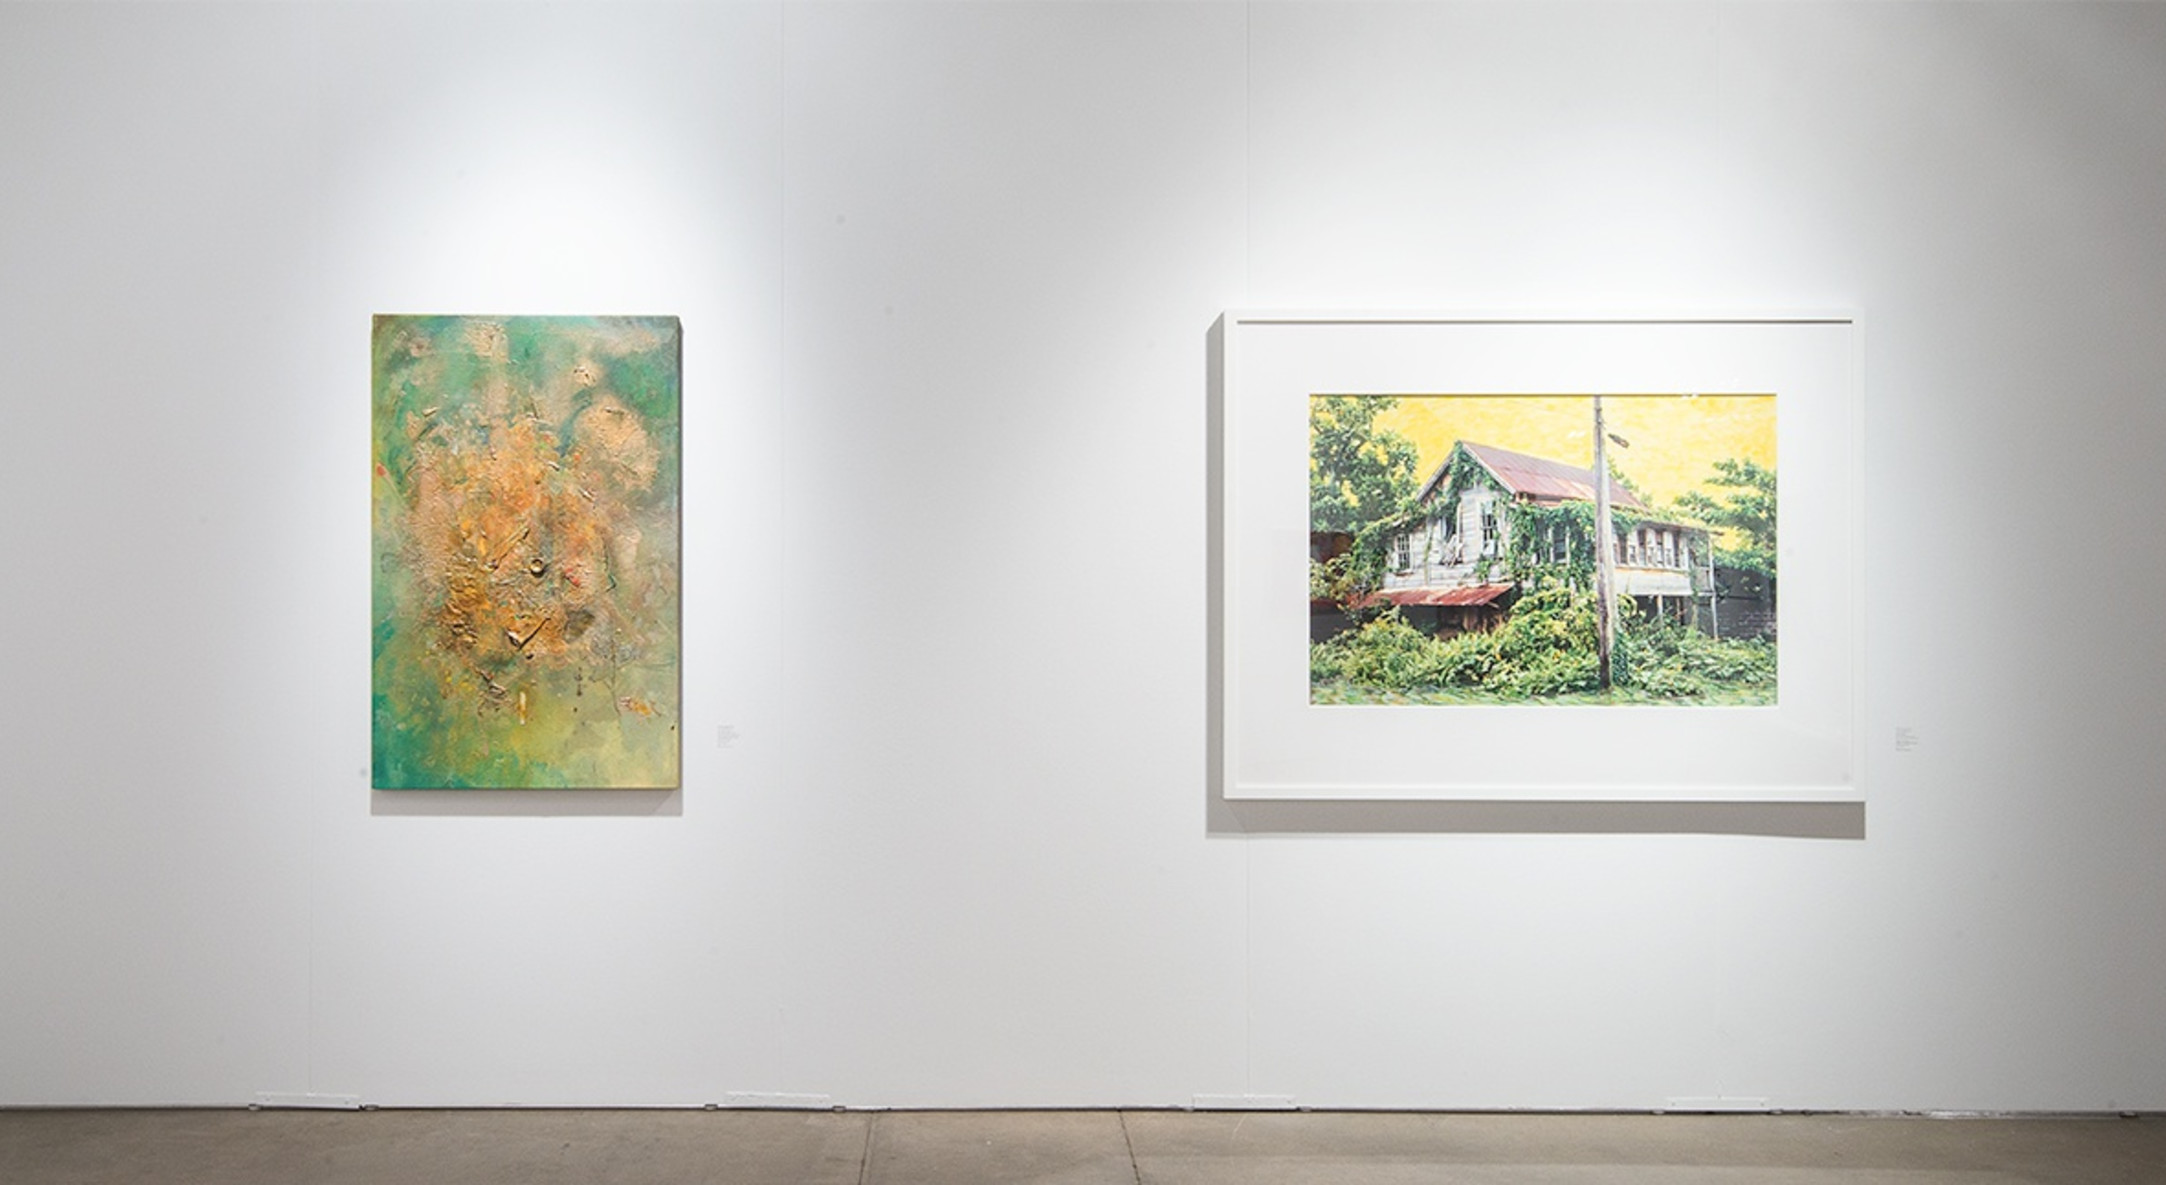 Installation view of Hales Gallery booth at Expo Chicago 2015